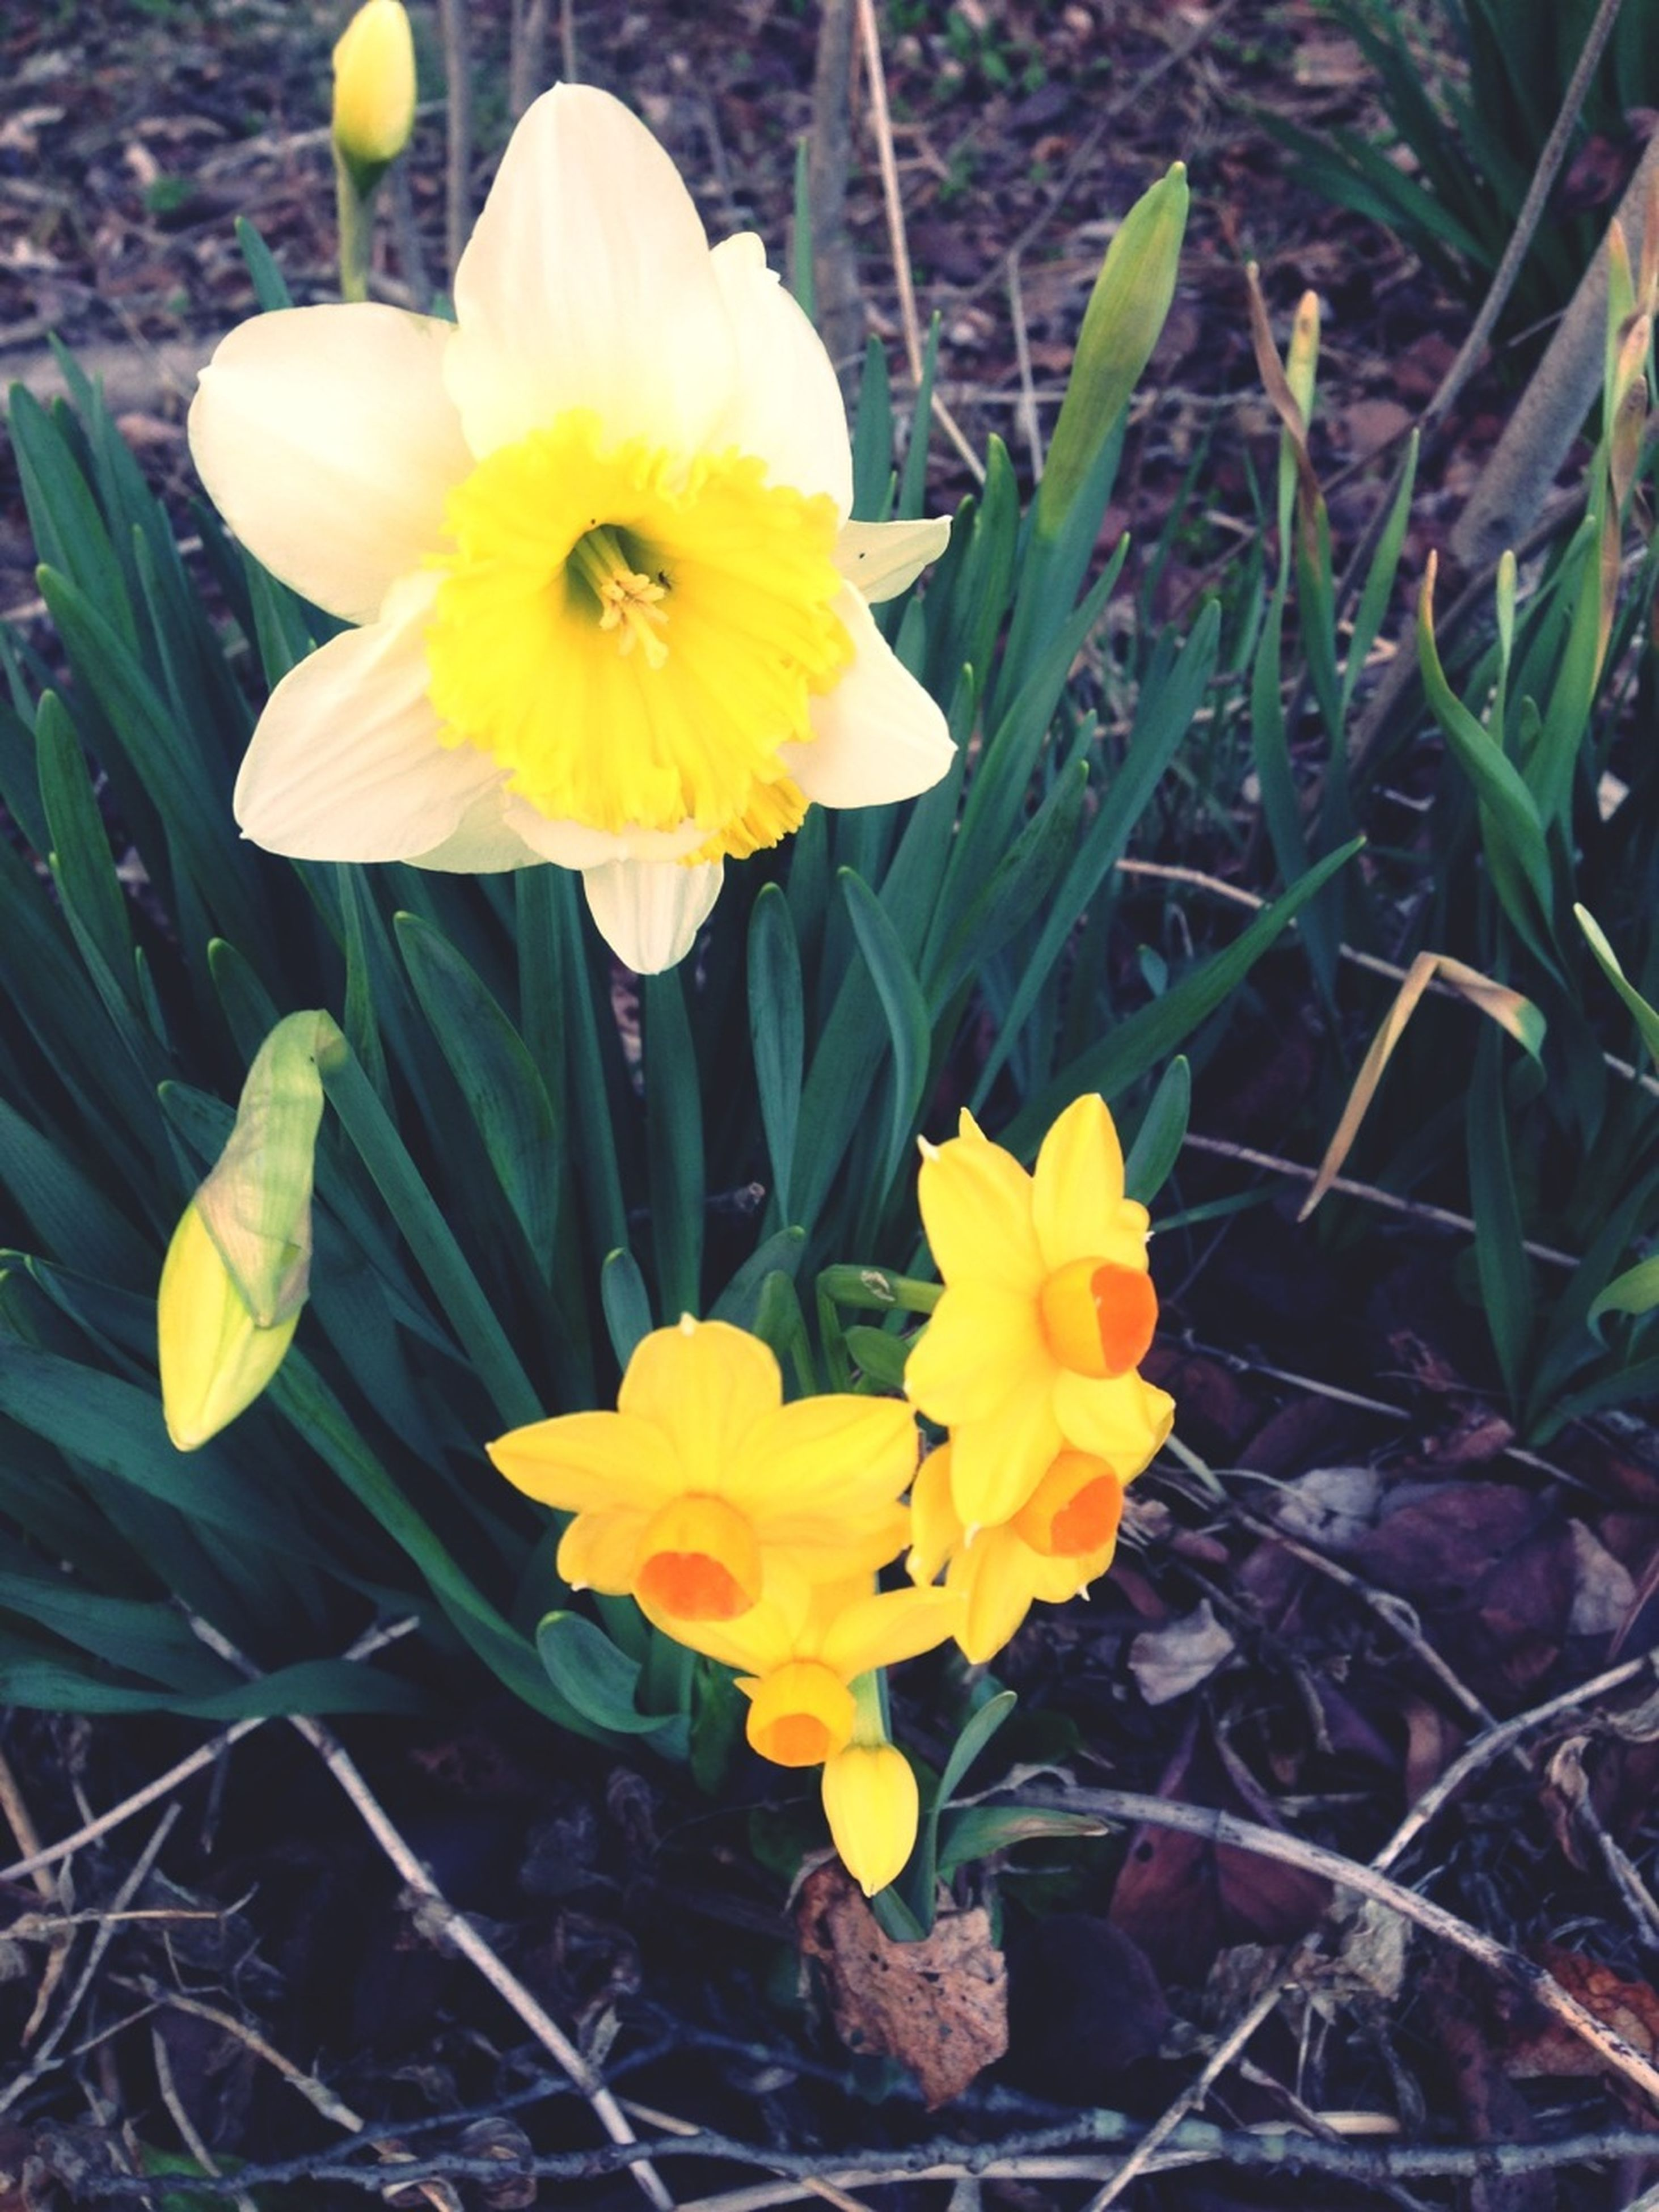 flower, petal, yellow, freshness, fragility, flower head, growth, beauty in nature, blooming, nature, close-up, plant, high angle view, in bloom, daffodil, pollen, stem, blossom, day, springtime